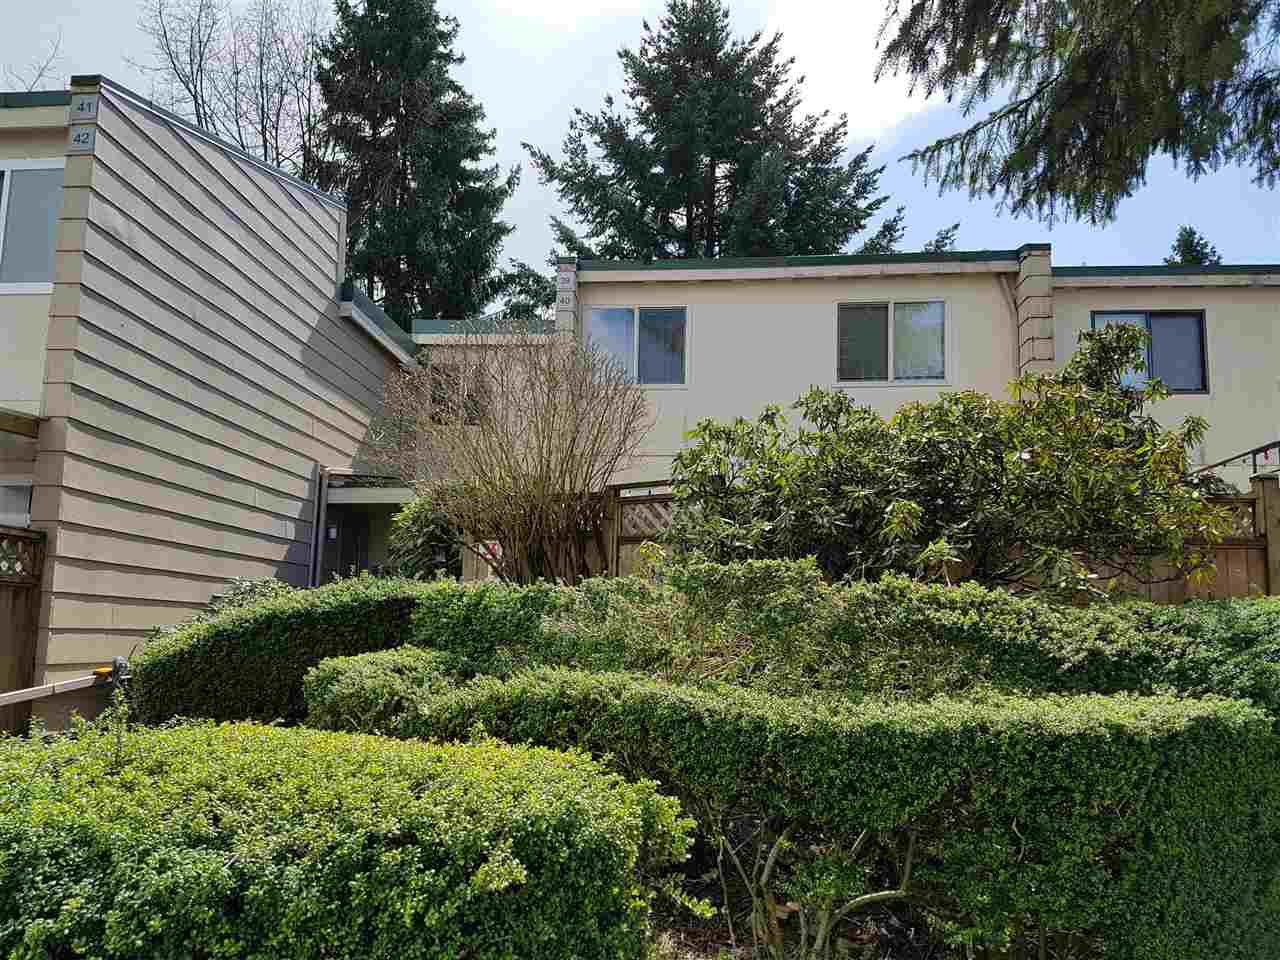 """Main Photo: 39 10555 153RD Street in Surrey: Guildford Townhouse for sale in """"guildford mews"""" (North Surrey)  : MLS®# R2255781"""